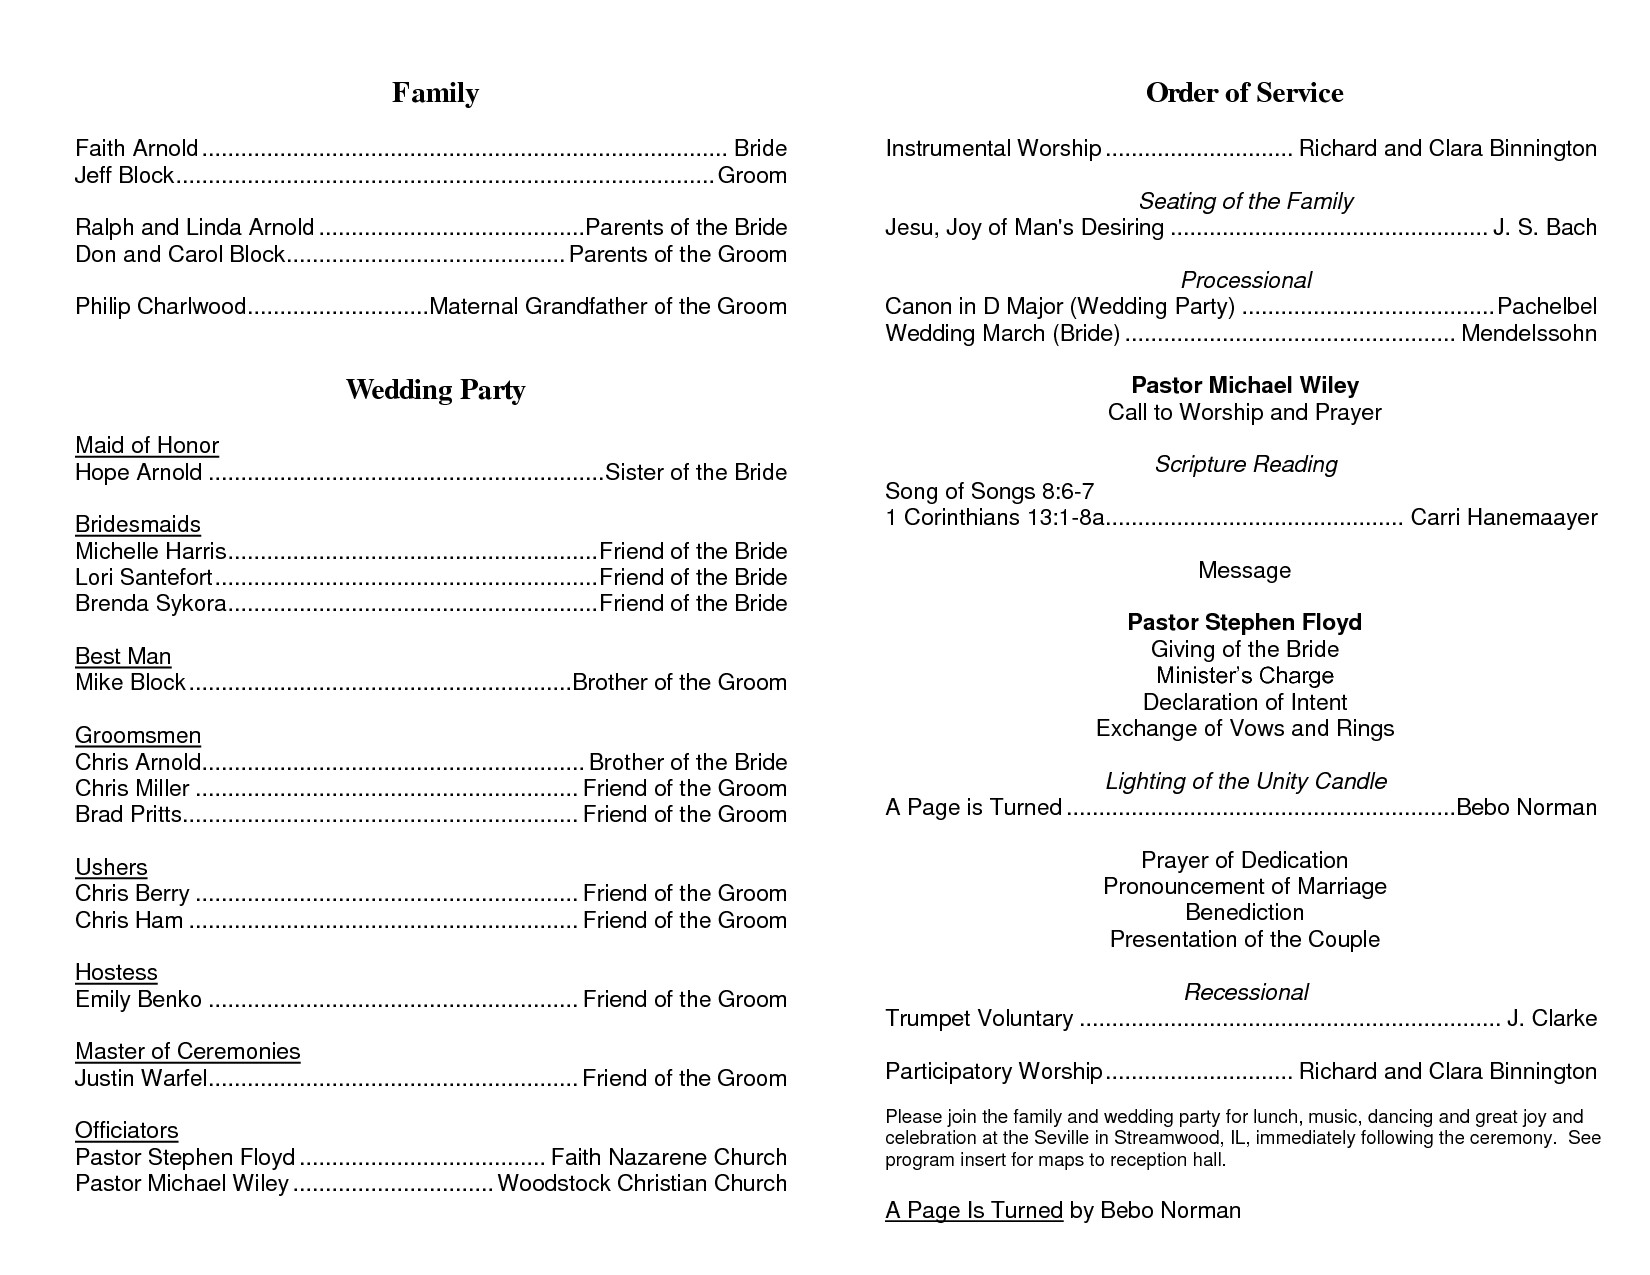 Order Of Worship Service Template Best S Of Church Programs order Service Church